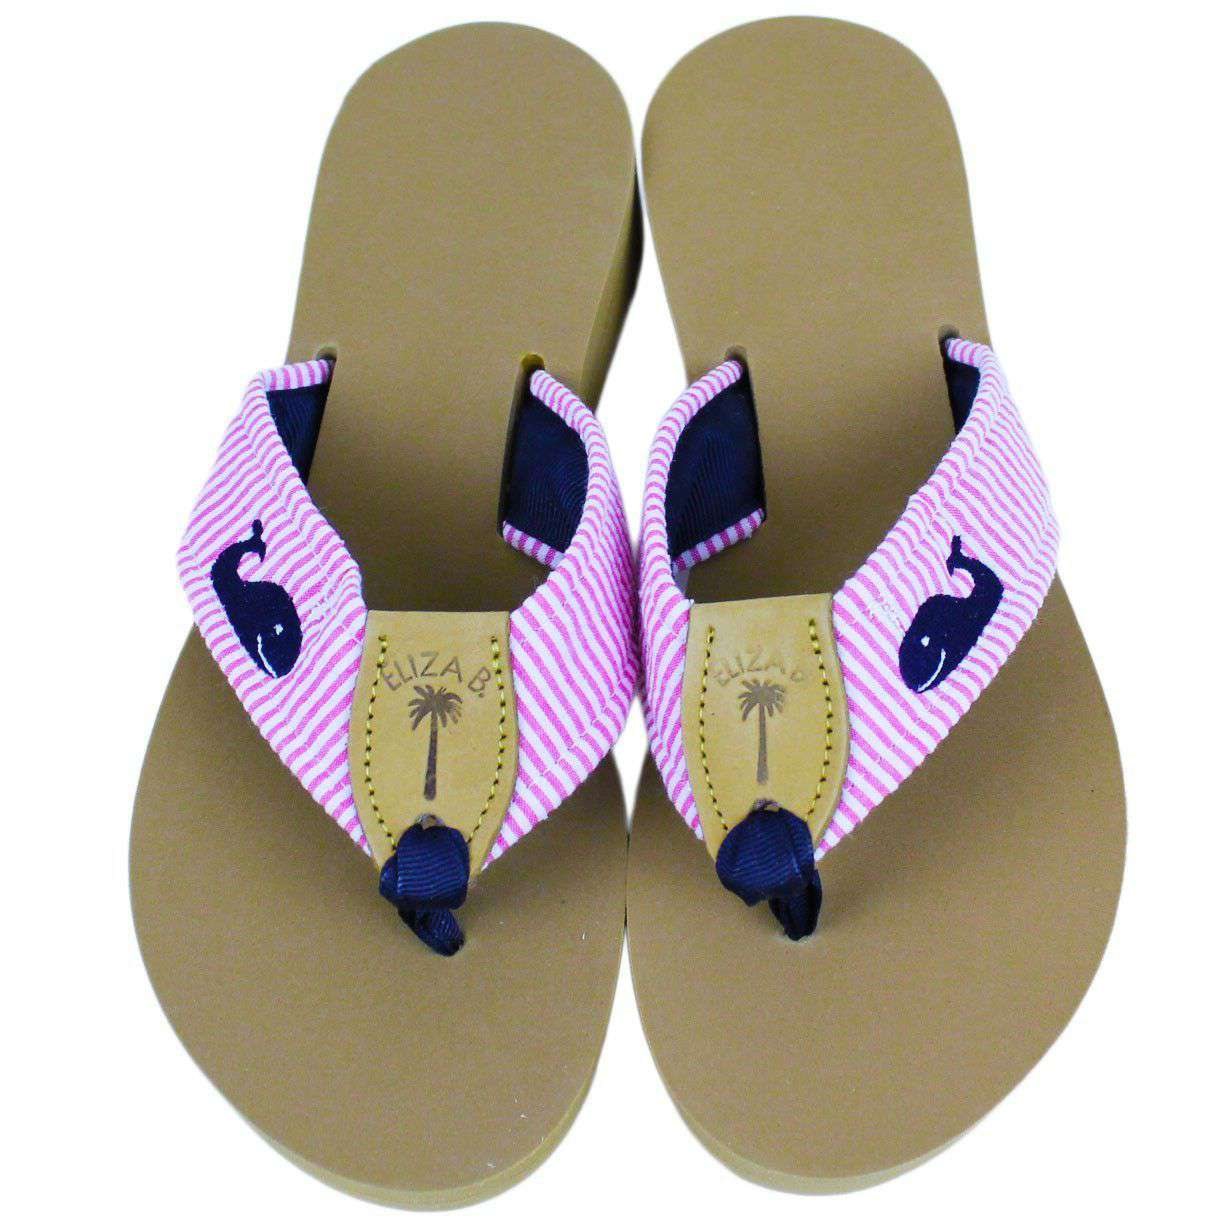 1281e2a99f05 Fabric Sandal in Pink Seersucker with Navy Embroidered Whales by Eliza –  Country Club Prep